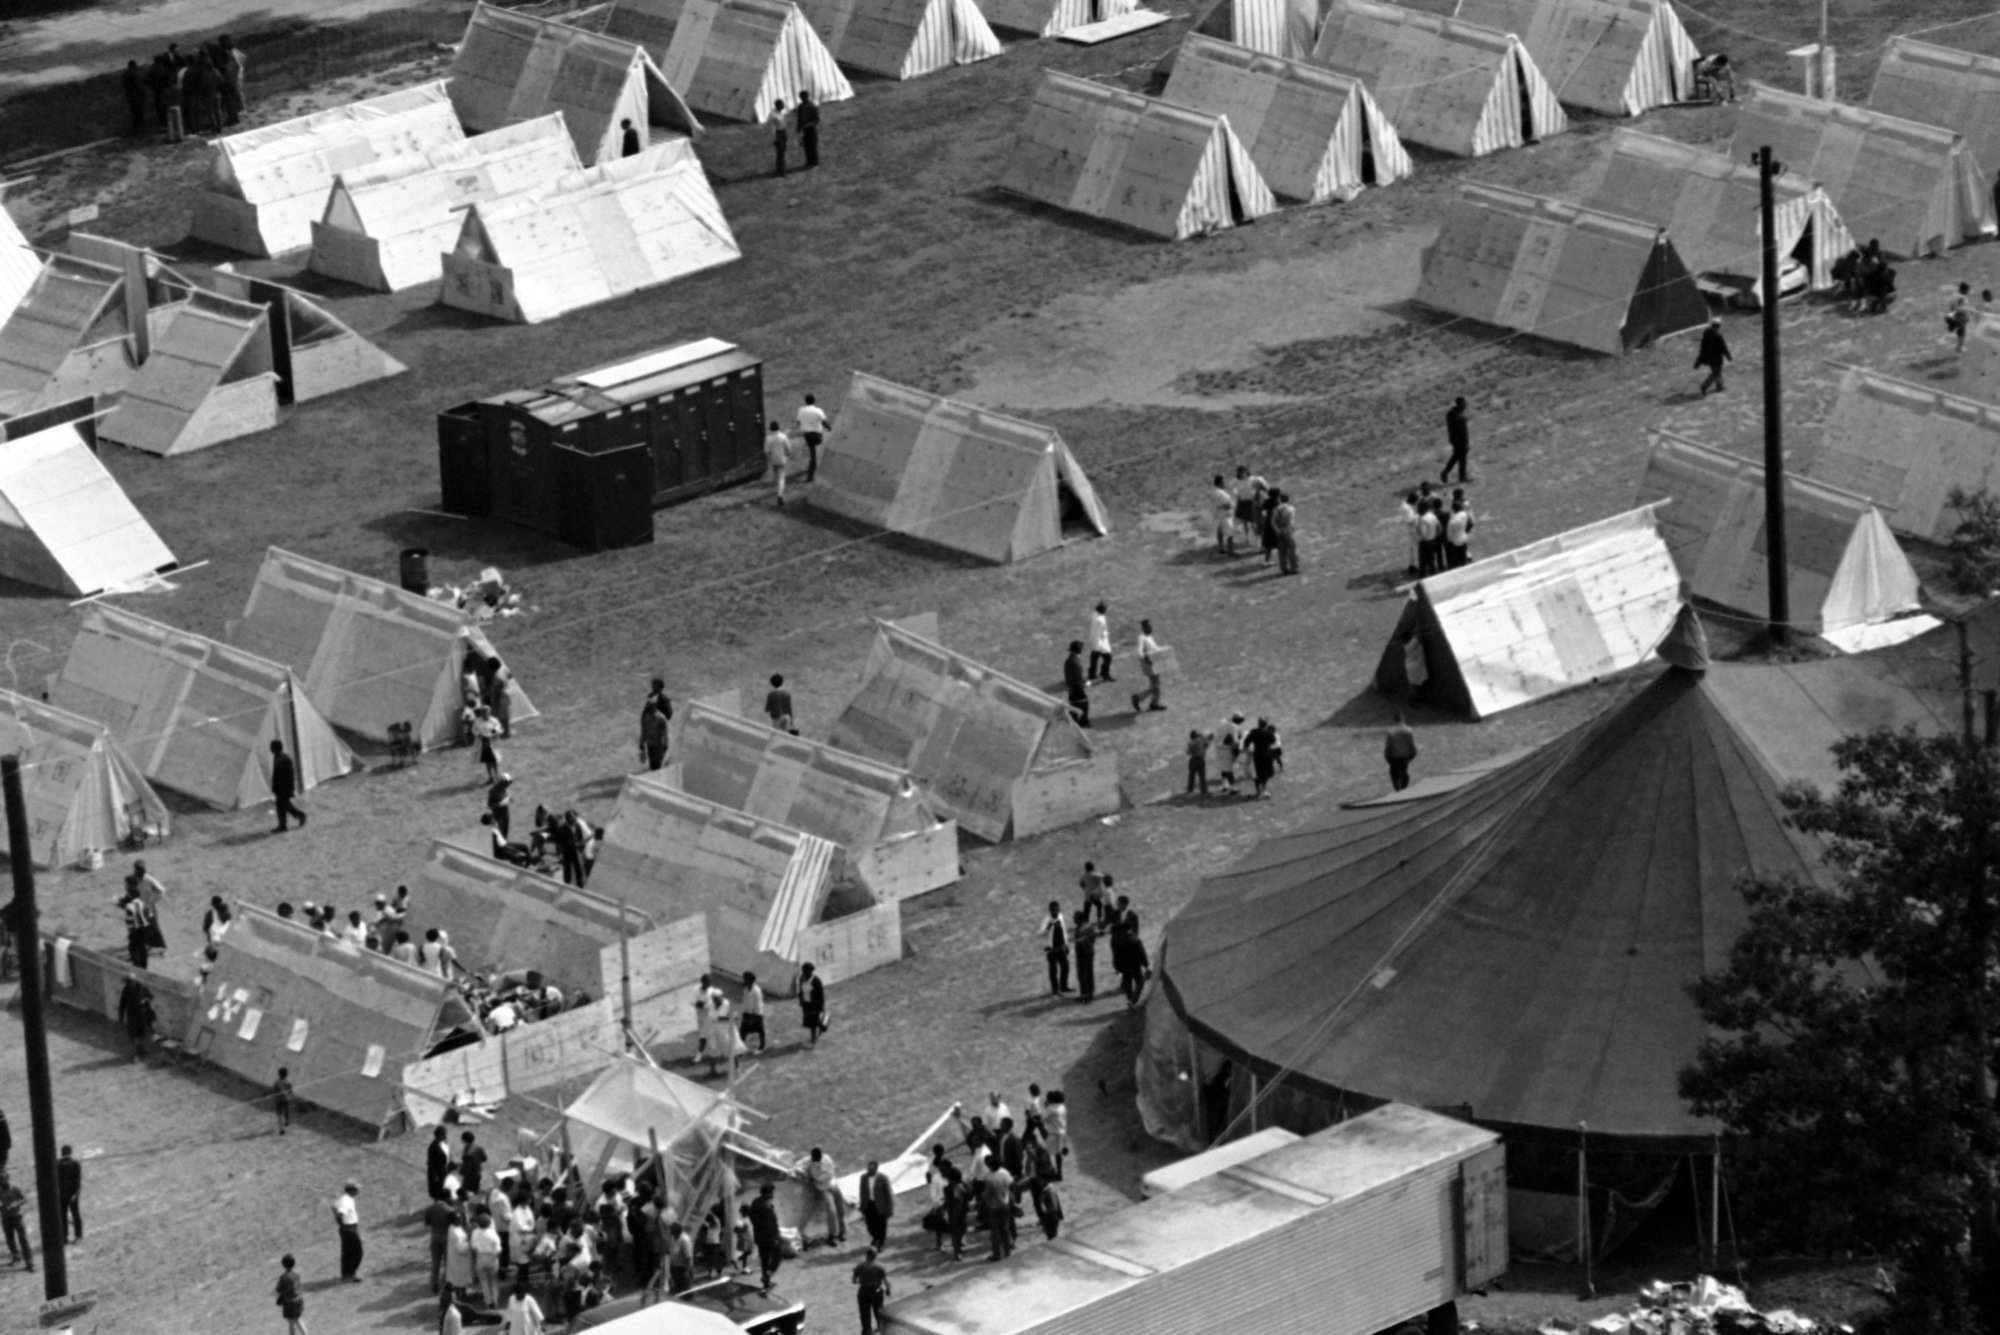 This aerial view shows activity in Resurrection City, the encampment of the Poor People's Campaign in Washington, May 17, 1968. Prefabricated structures in various stages of construction with completed units can be seen at upper right. Large tent in lower right is used as a dining are and general meeting hall for members of the march, sponsored by the Southern Christian Leadership Conference. (AP Photo/Bob Daugherty)